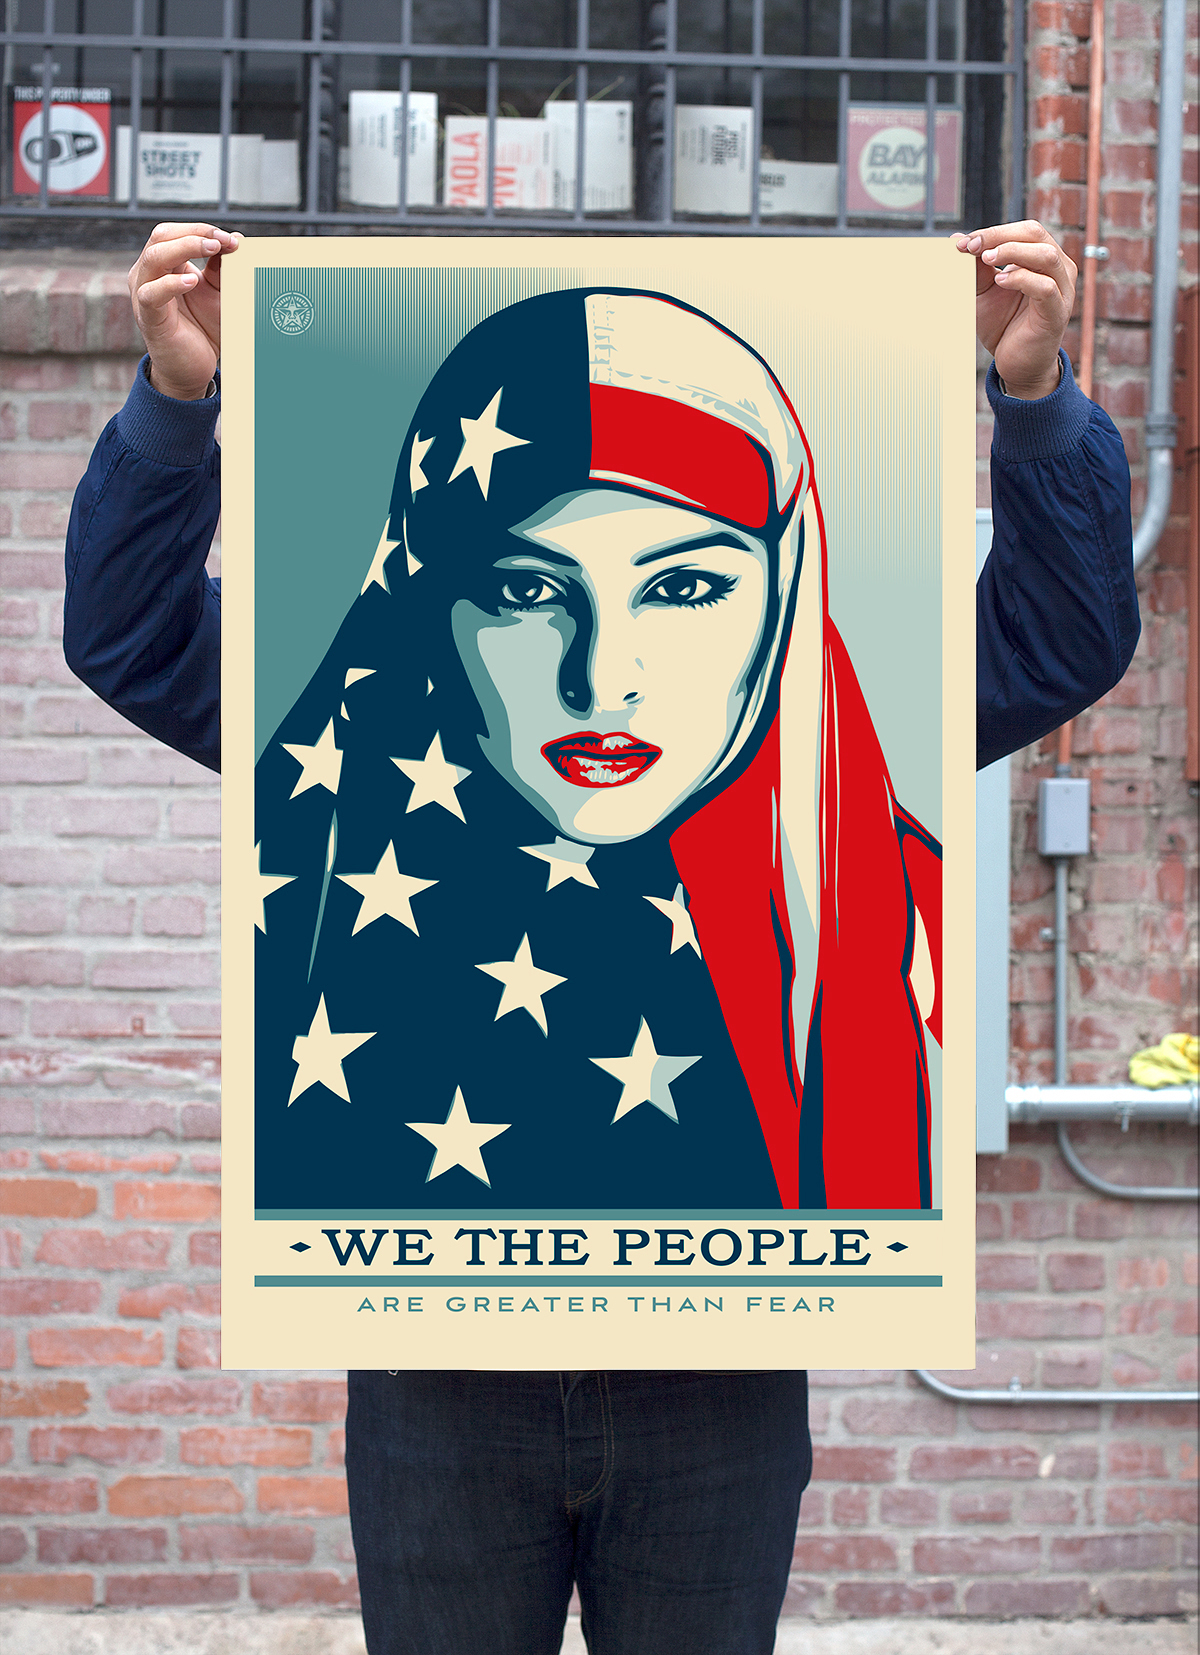 Poster by Shepard Fairey via Amplifier Foundation.